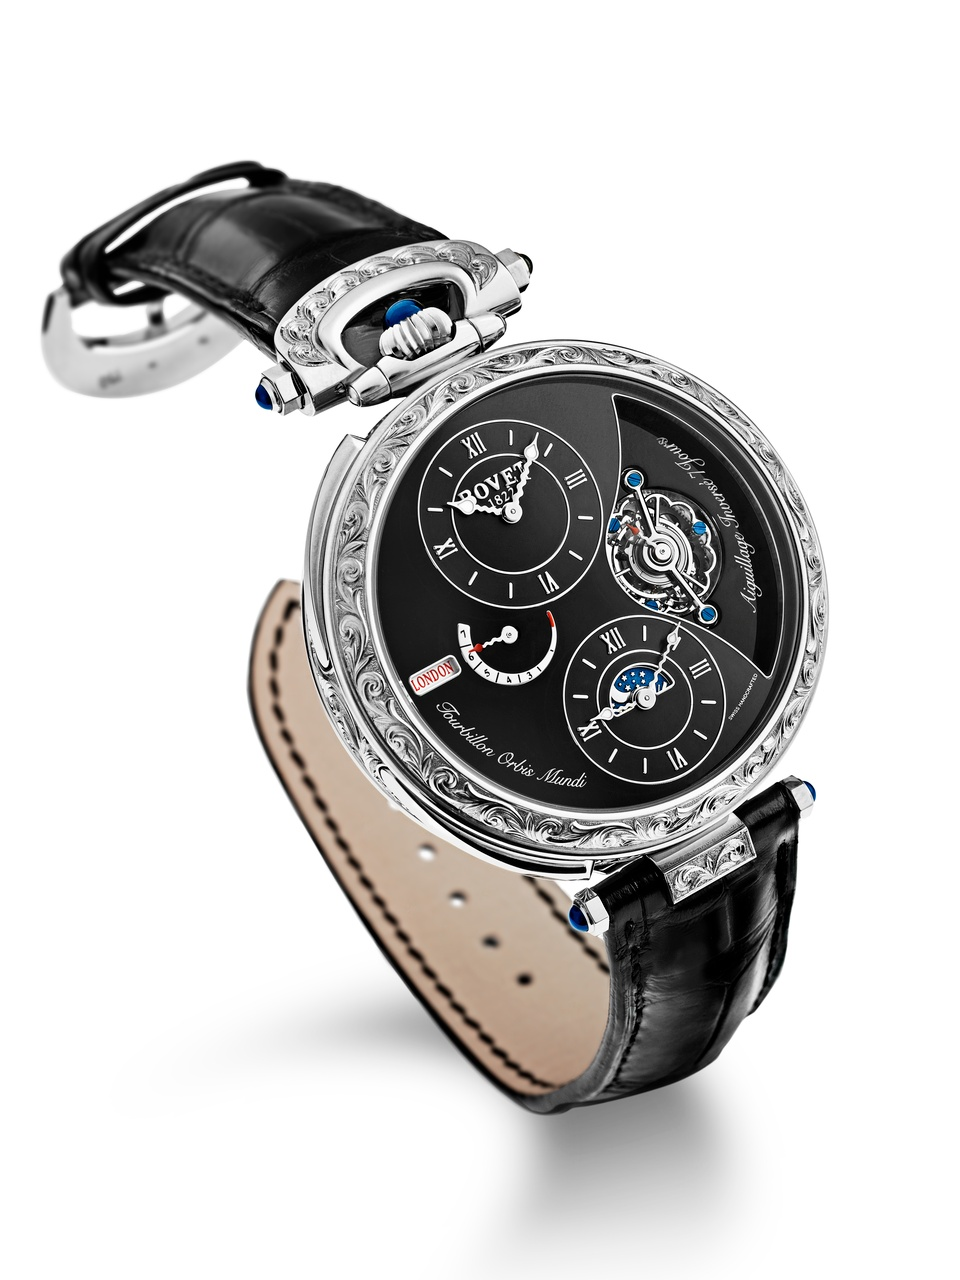 Bovet Watch Amadeo Fleurier Grandes Complications Ref. Nr. AIOM006-G1234 Call 312-944-3100 | For Availability